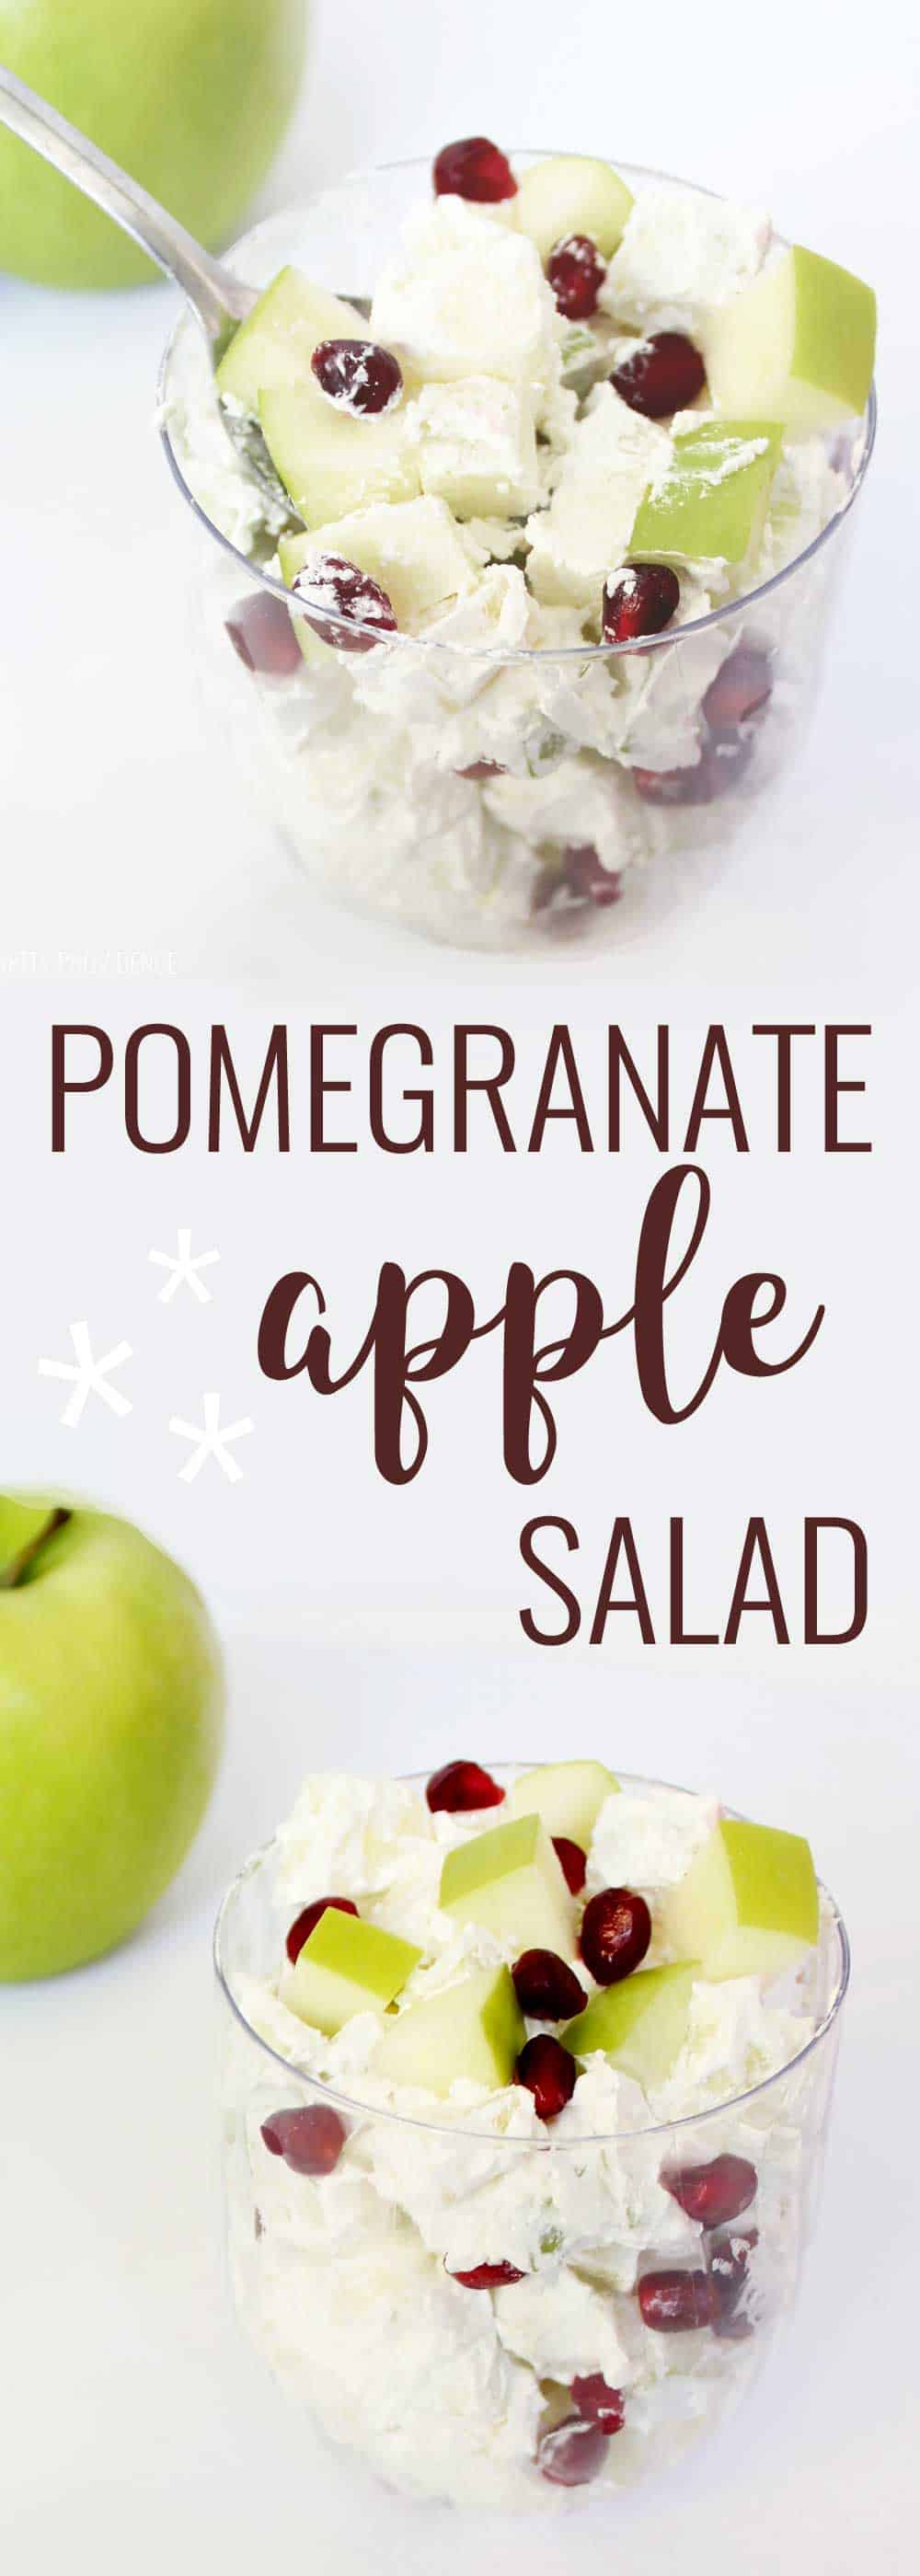 pomegranate-apple-salad-pin-1